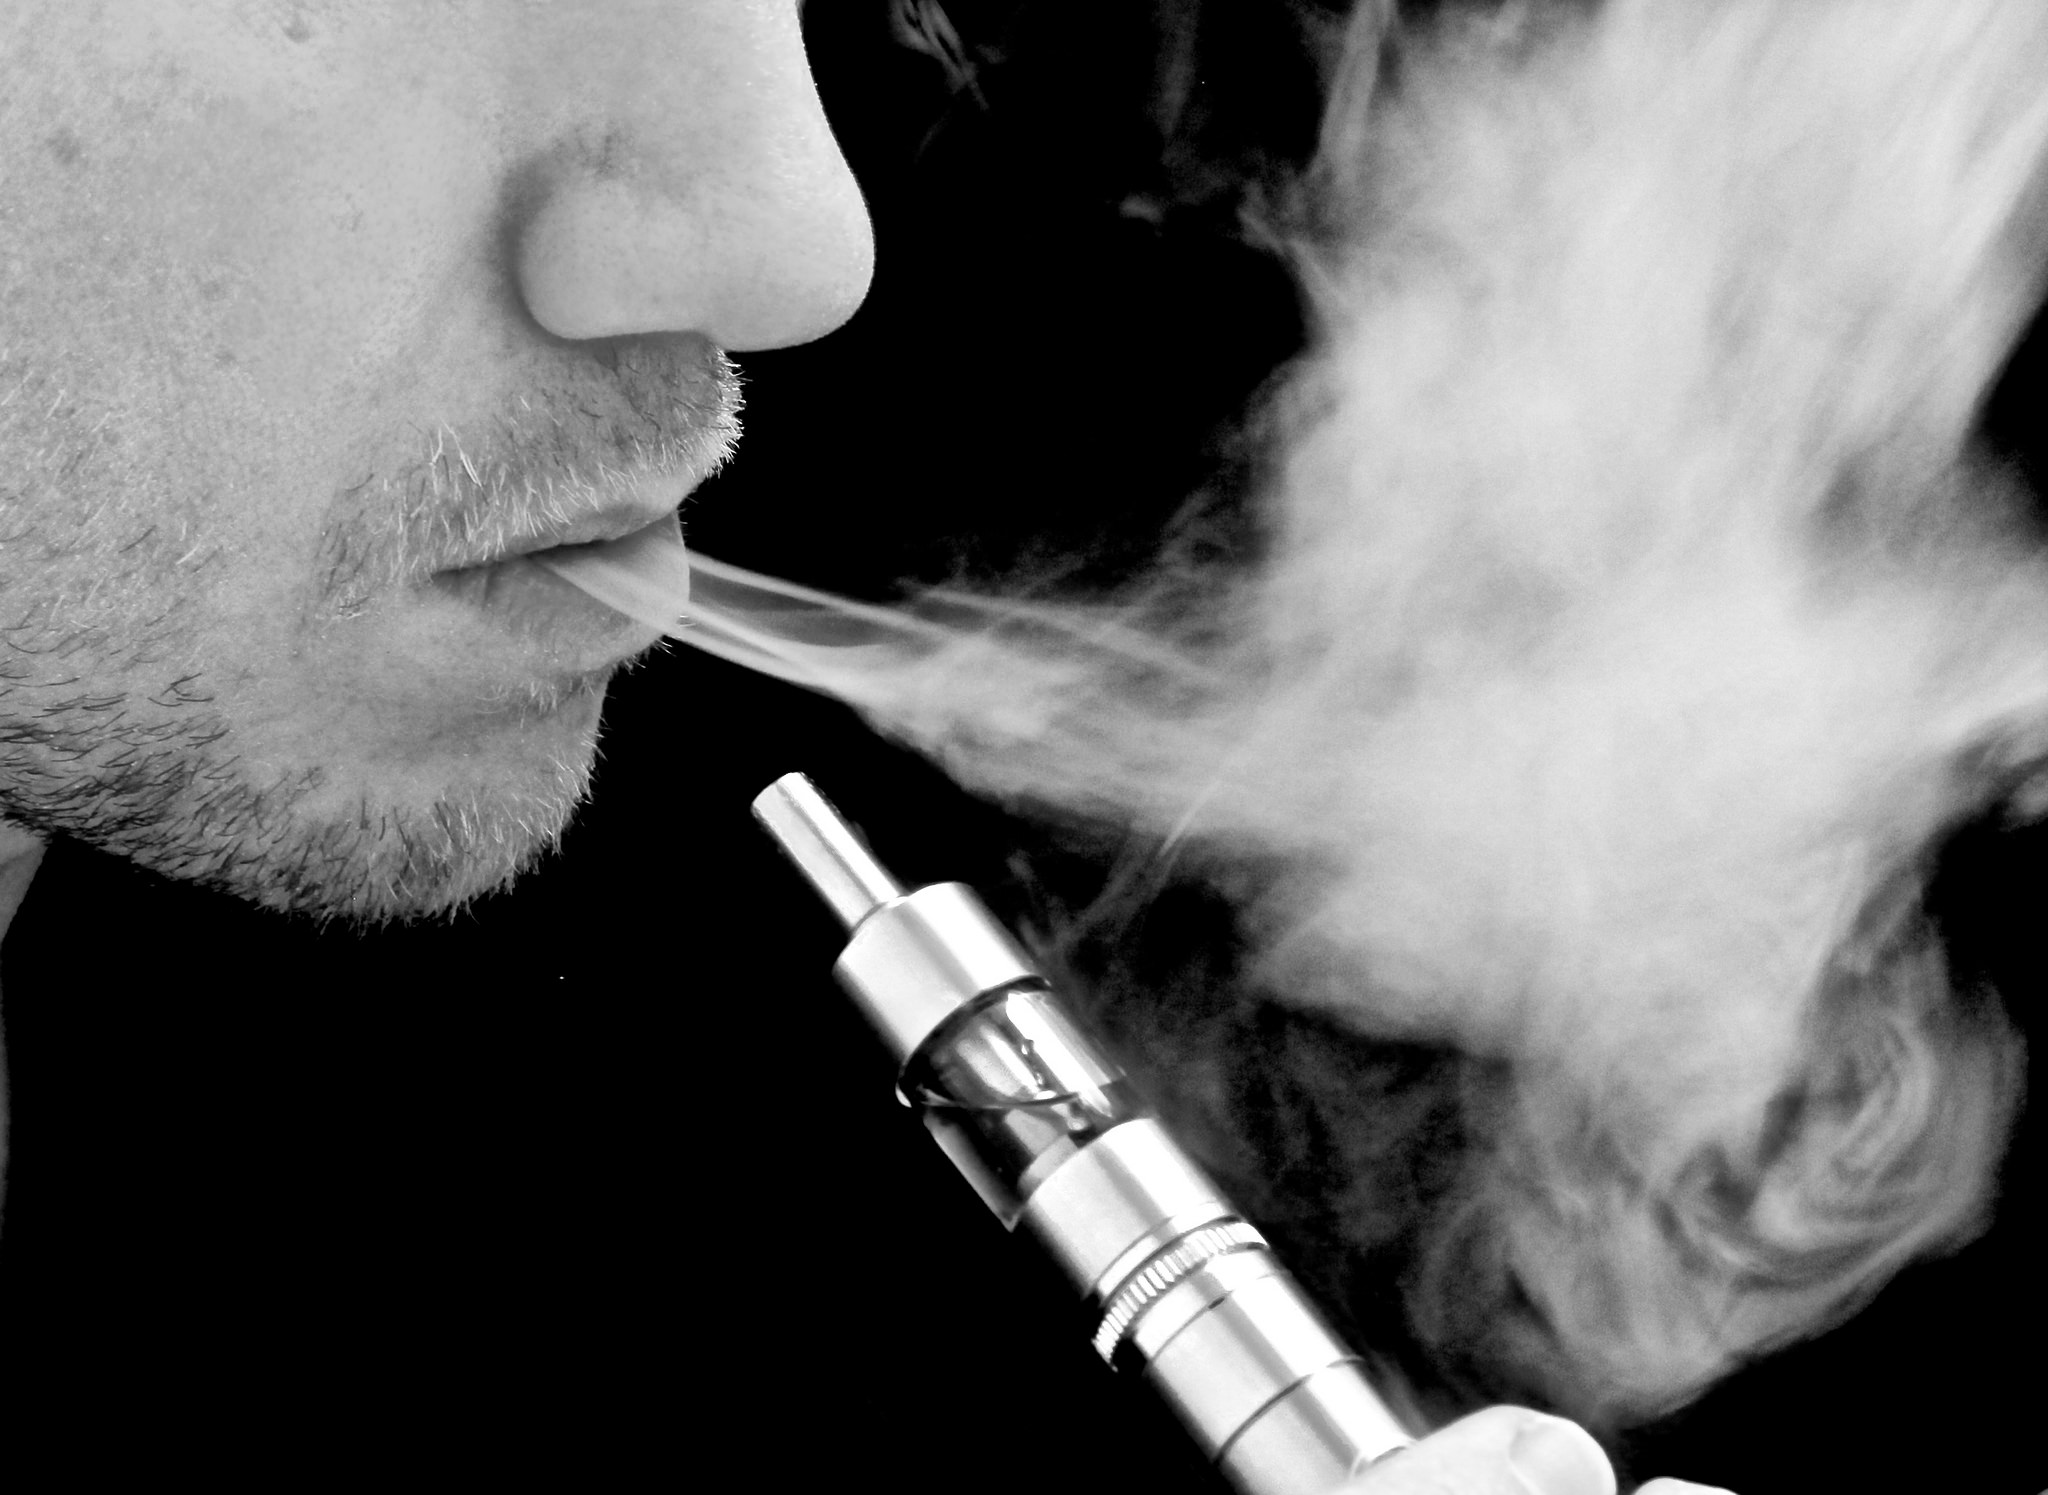 Learn how vaping helps smokers quit ... photo by CC user ecigclick on Flickr